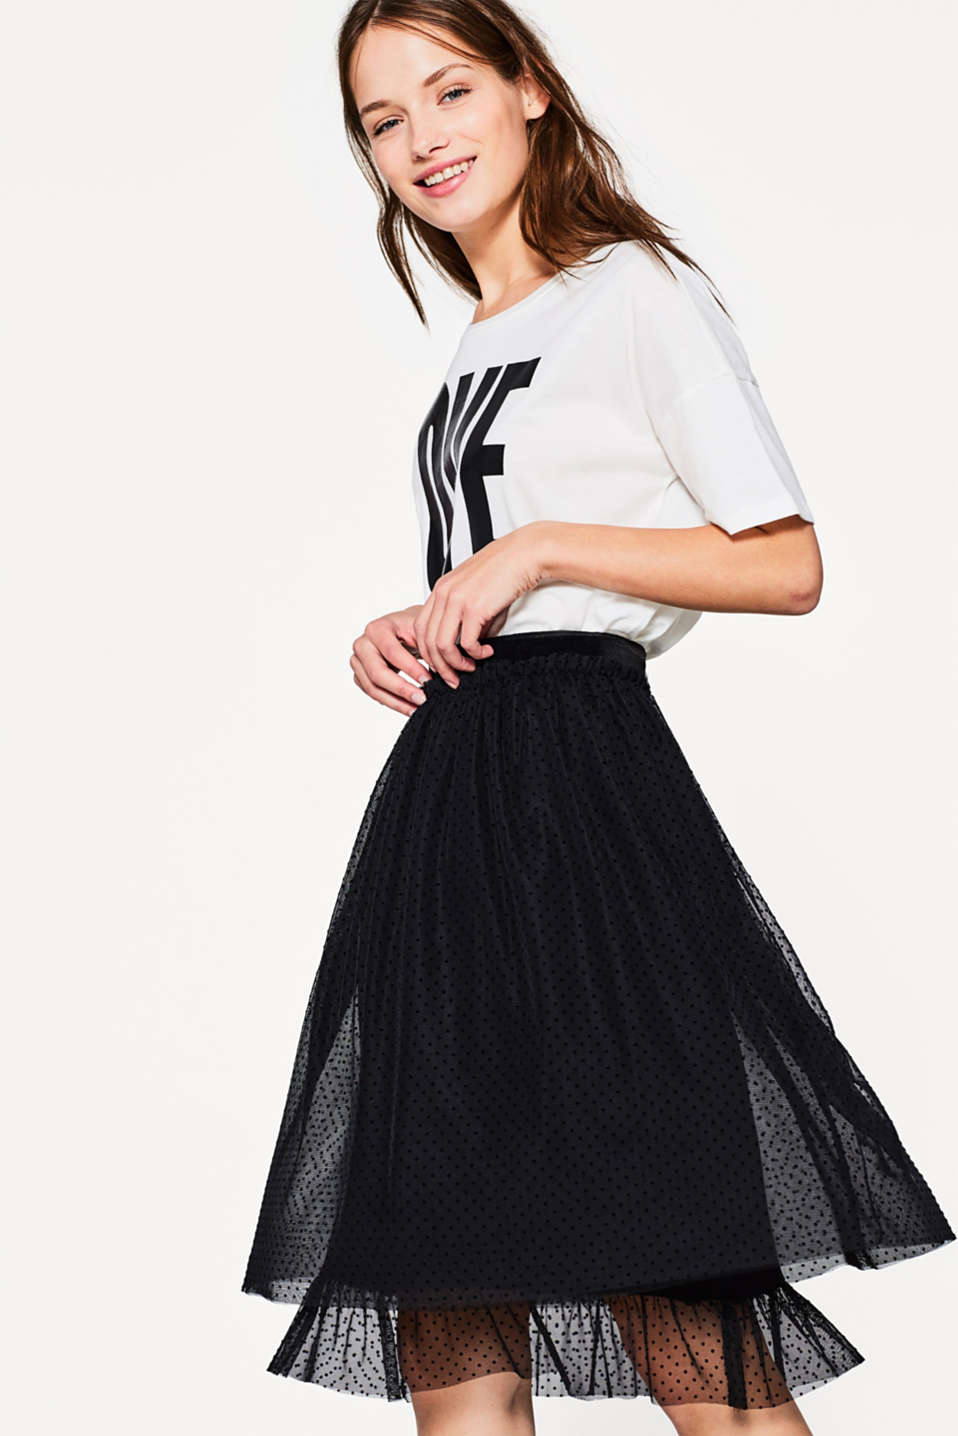 edc - Tulle skirt with a polka dot pattern